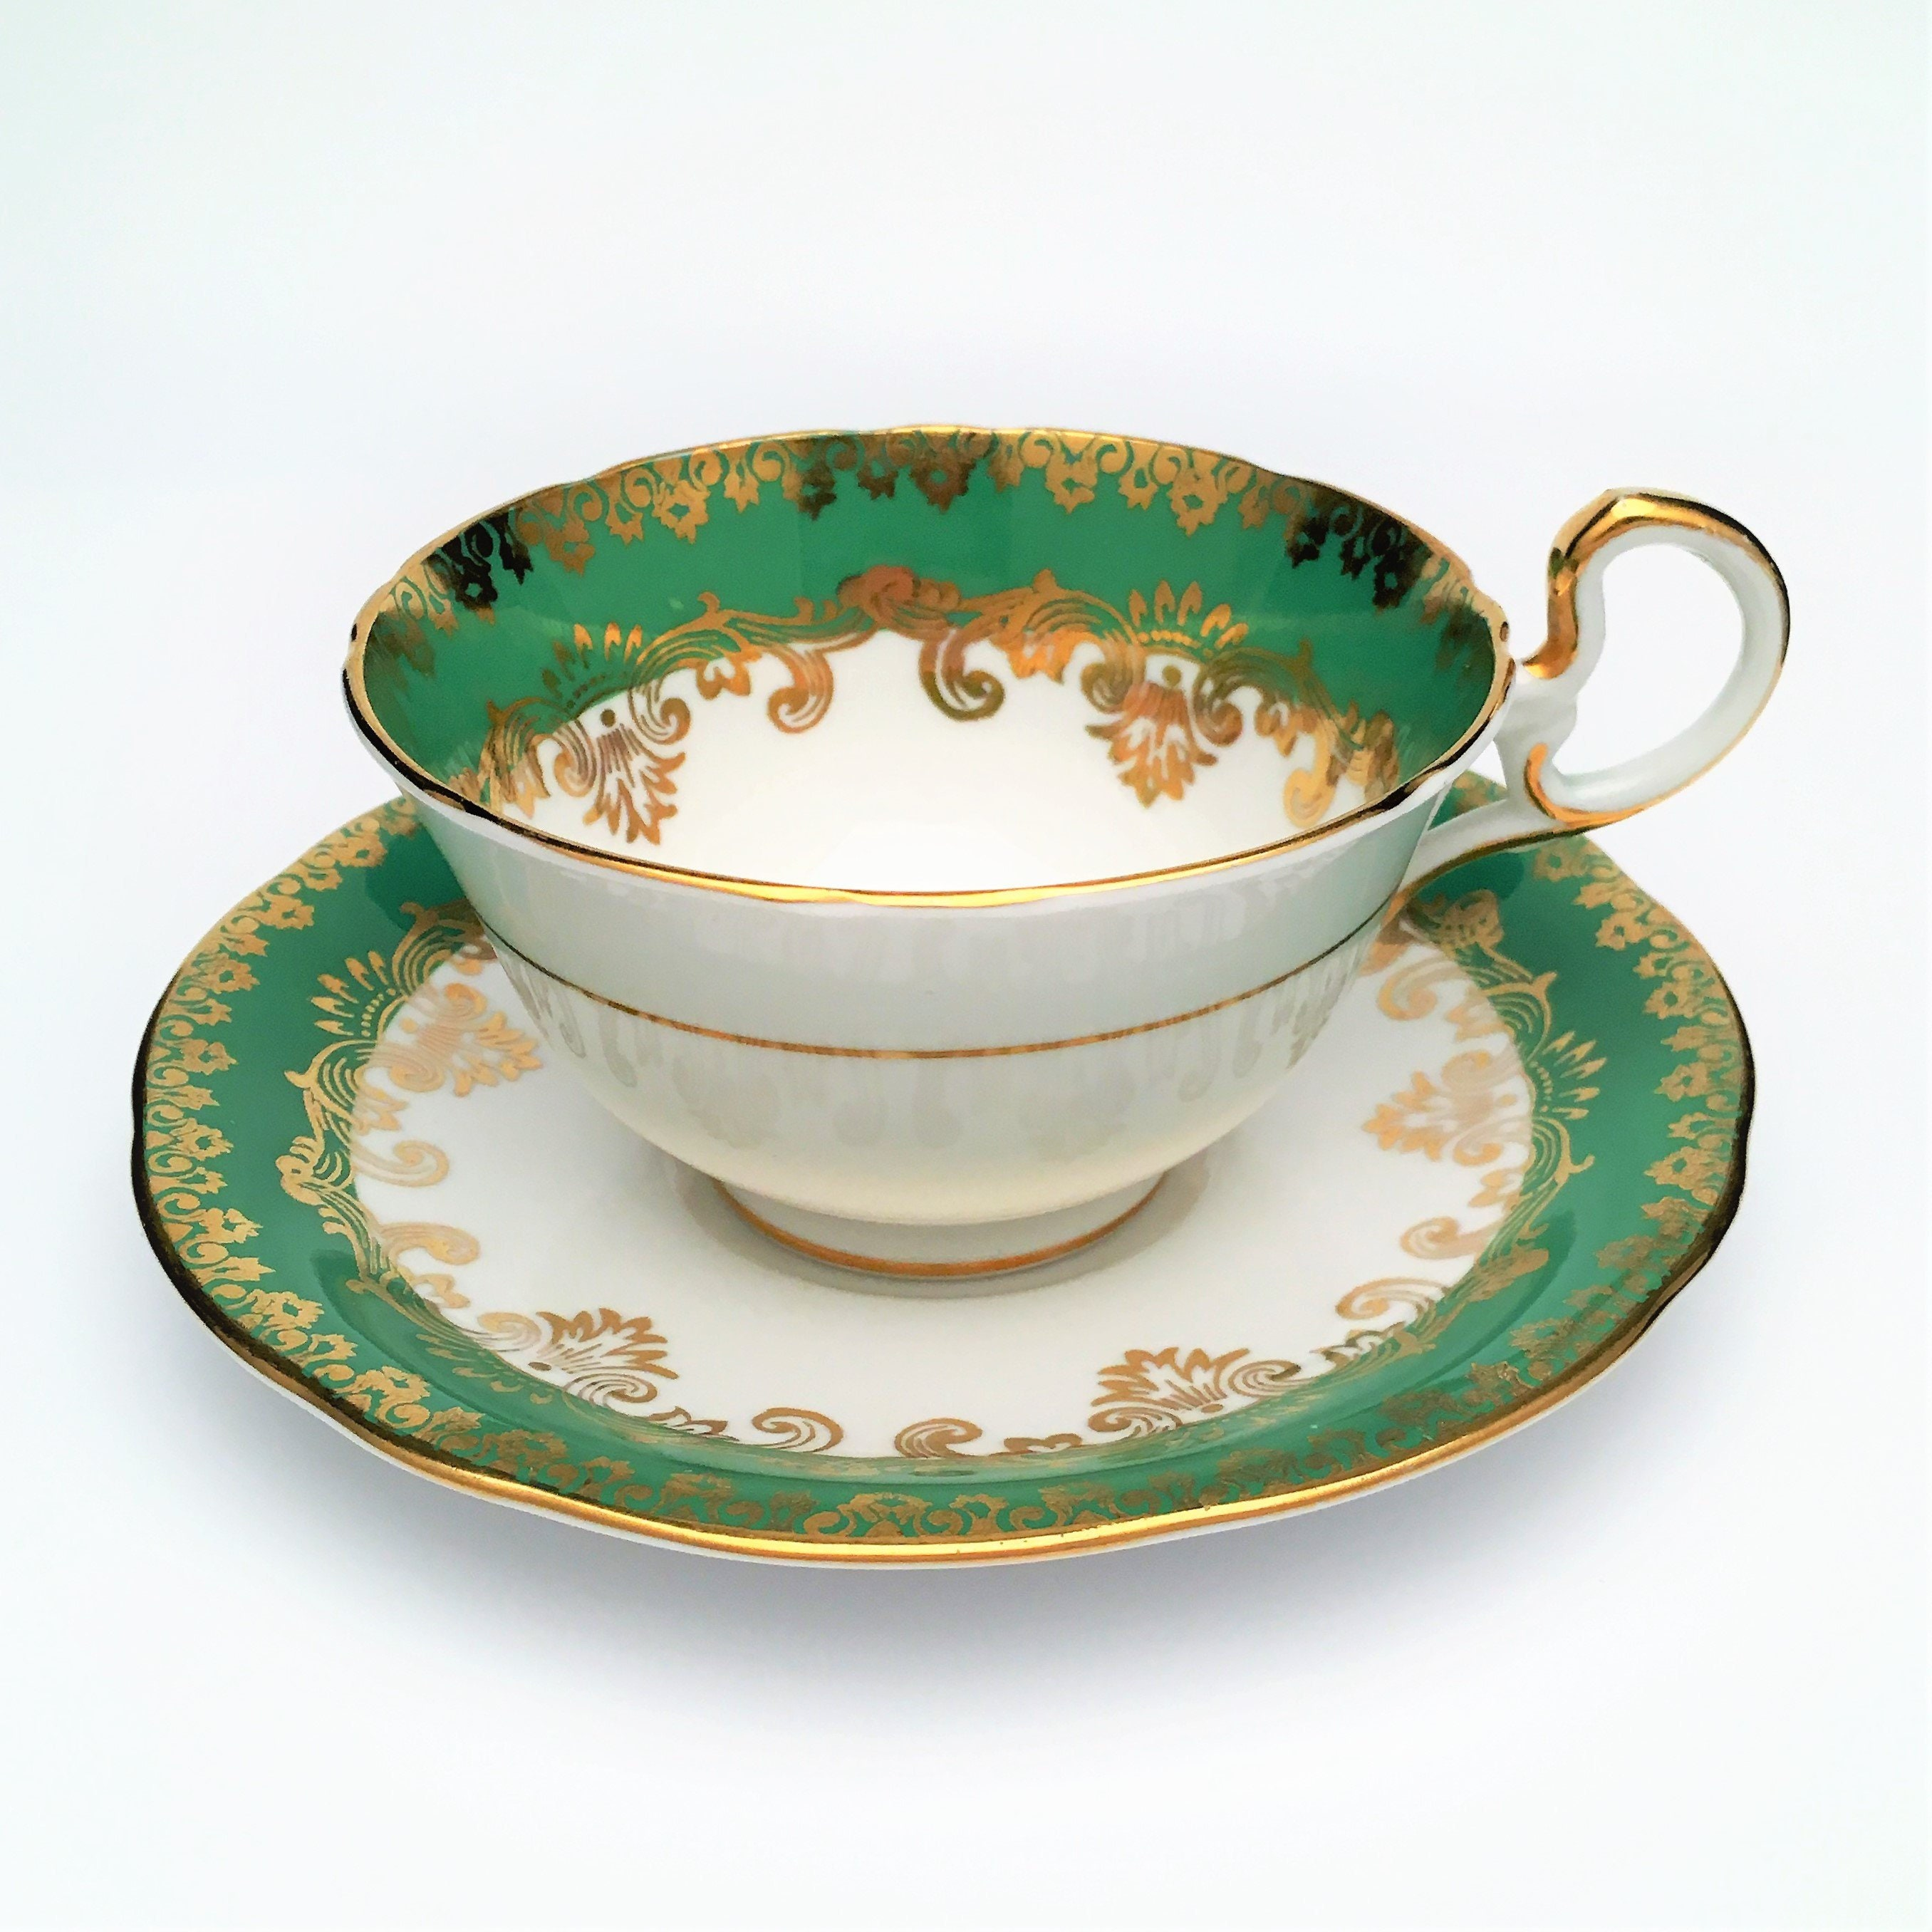 Dating Aynsley Angleterre Bone China